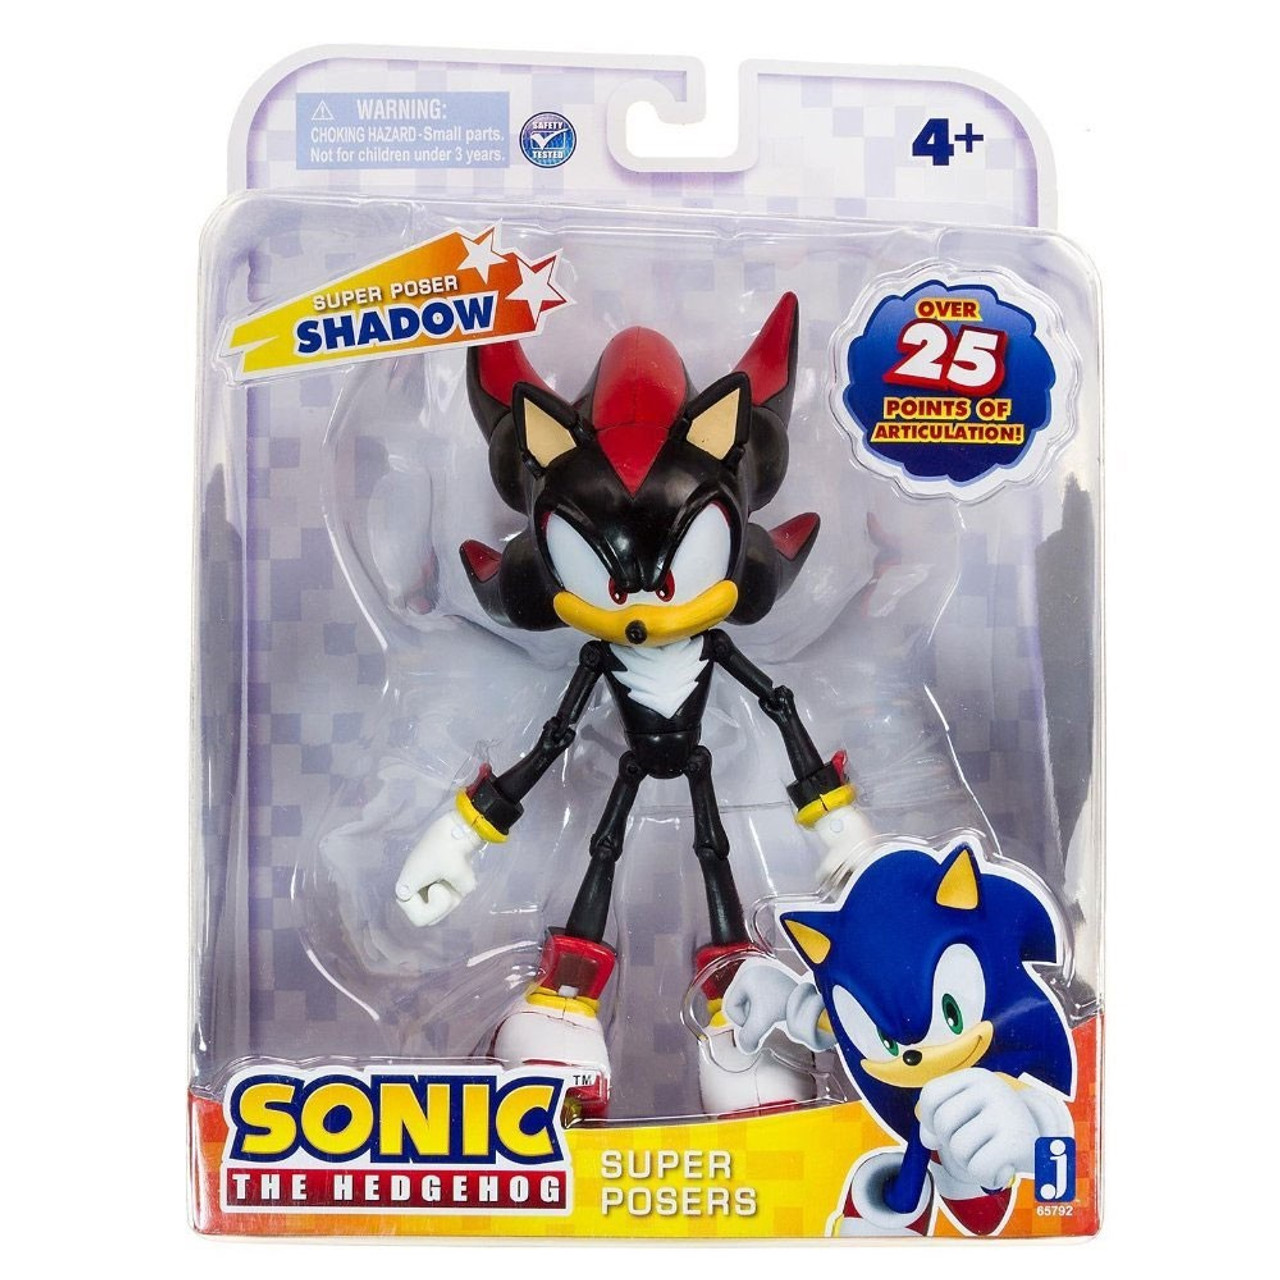 Sonic The Hedgehog 20th Anniversary Super Posers Shadow Action Figure